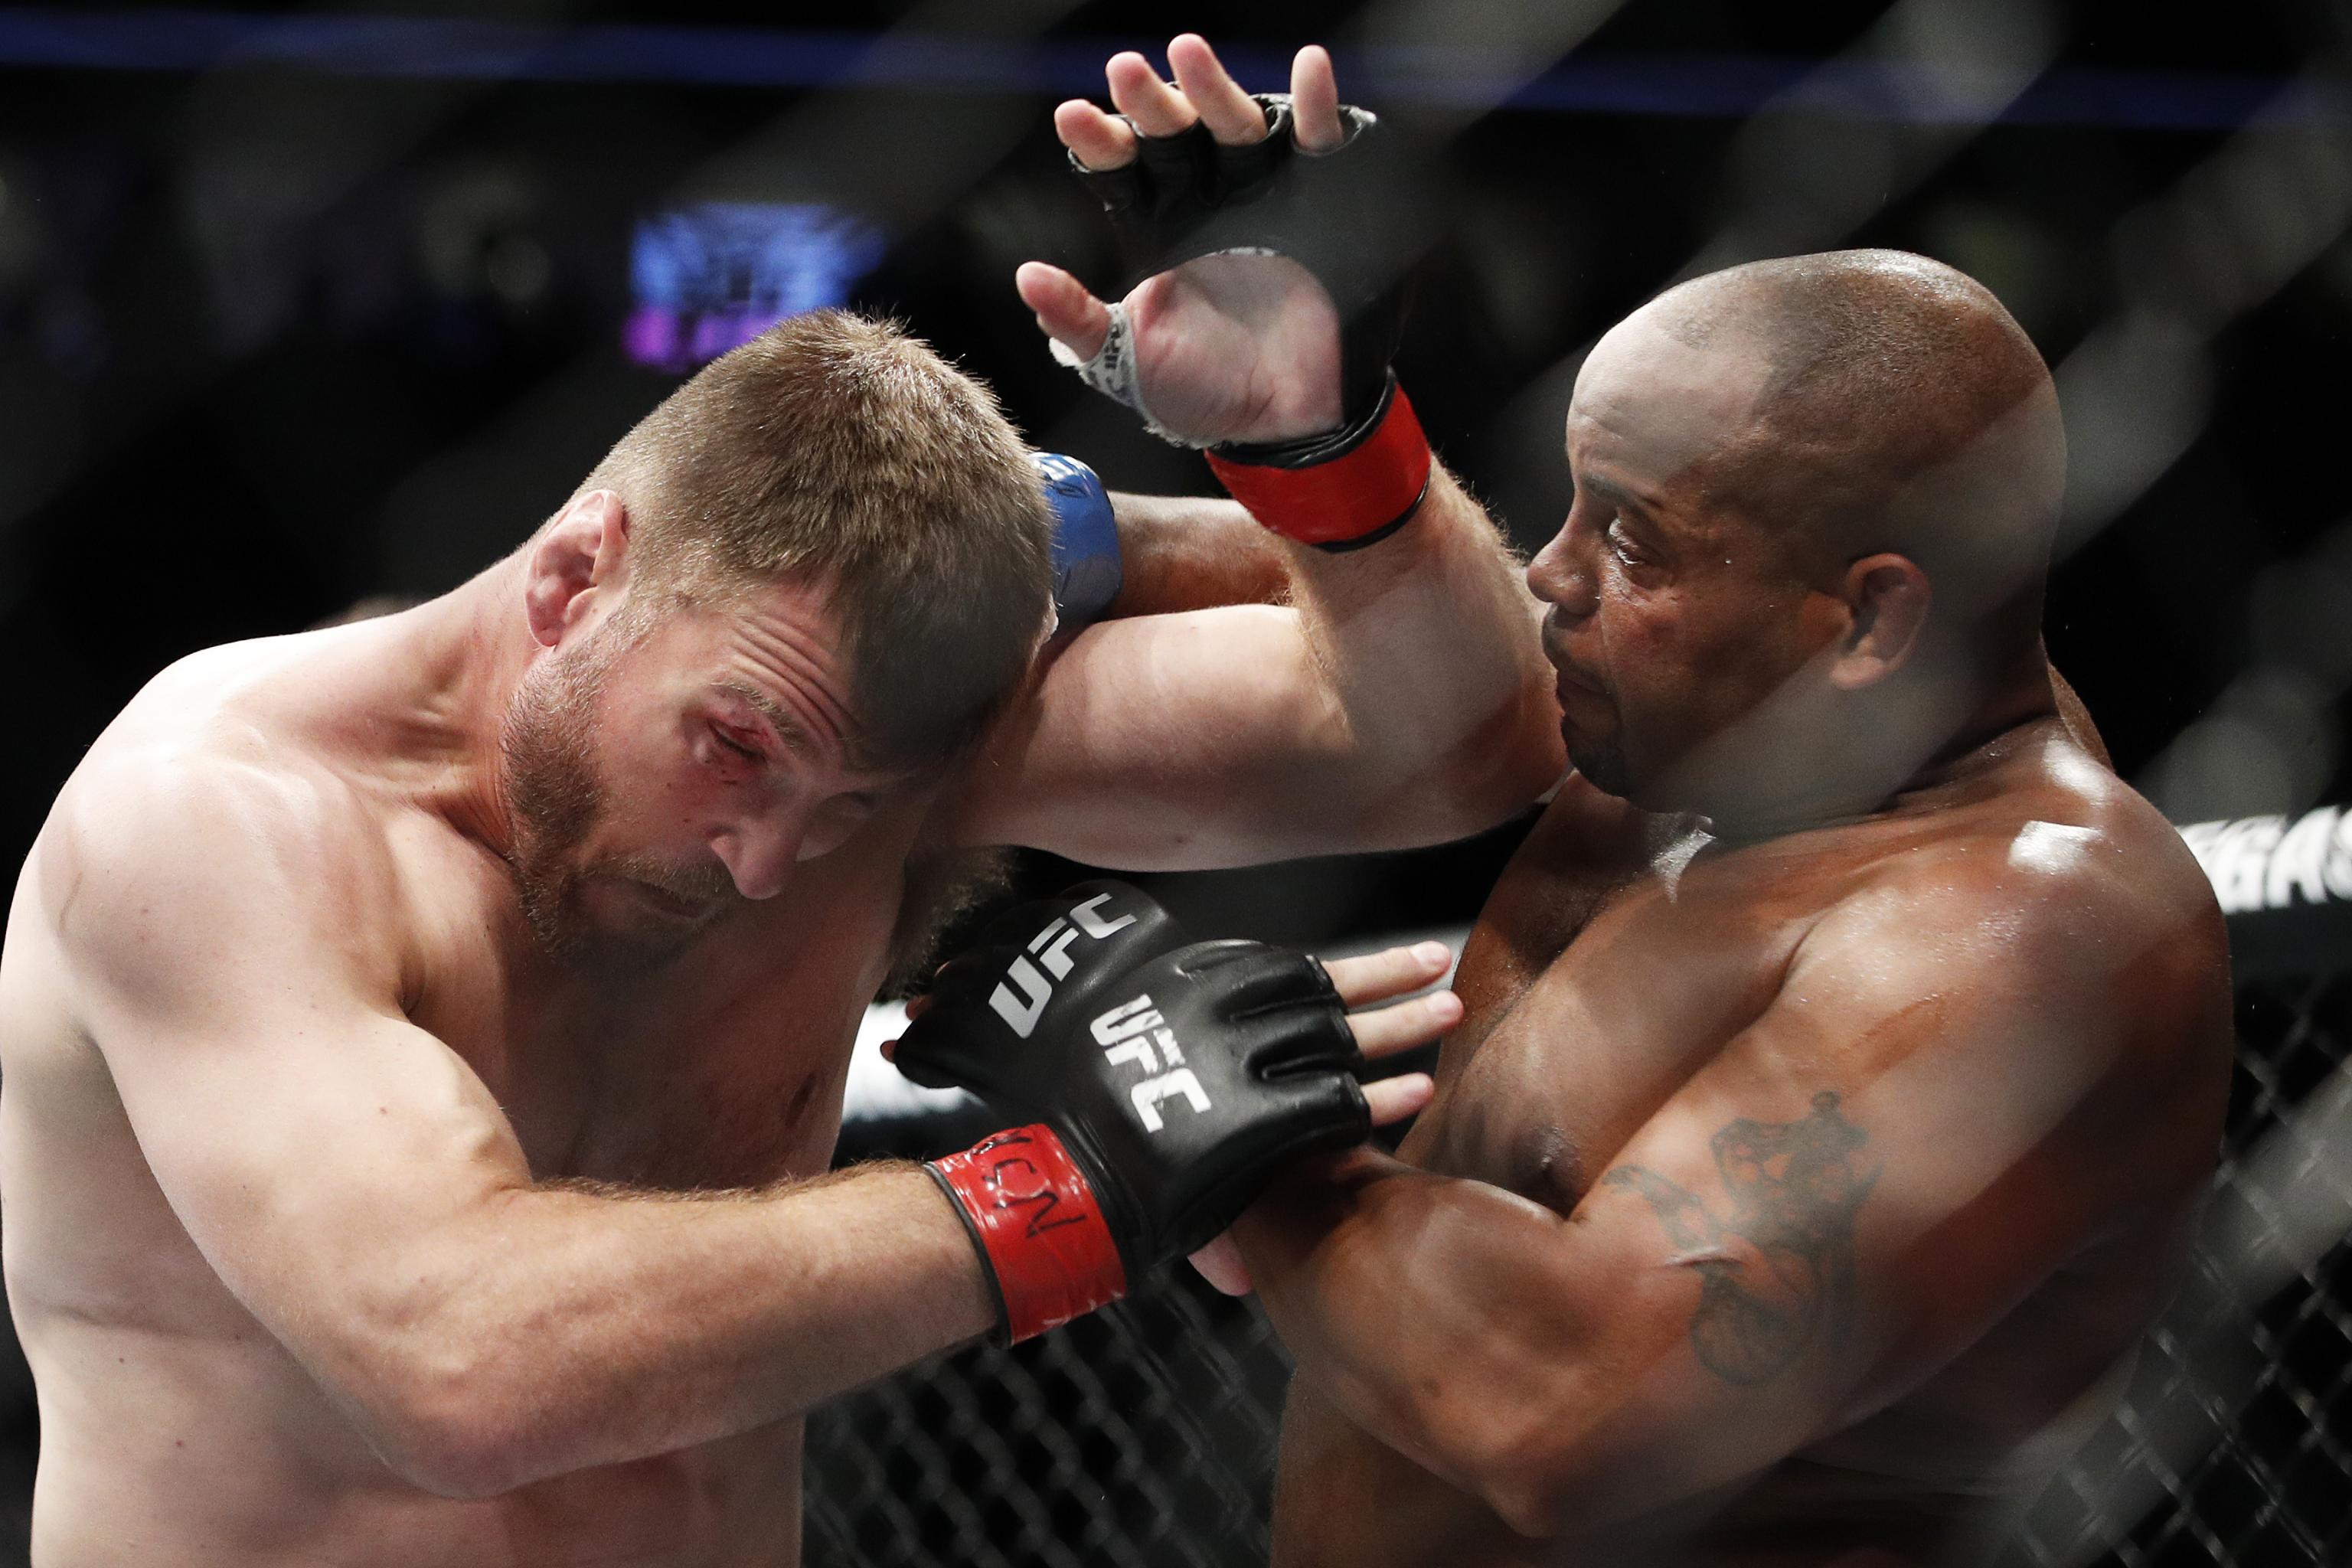 Ufc 252 Fight Card Ppv Schedule Odds And Predictions For Miocic Vs Cormier 3 Bleacher Report Latest News Videos And Highlights